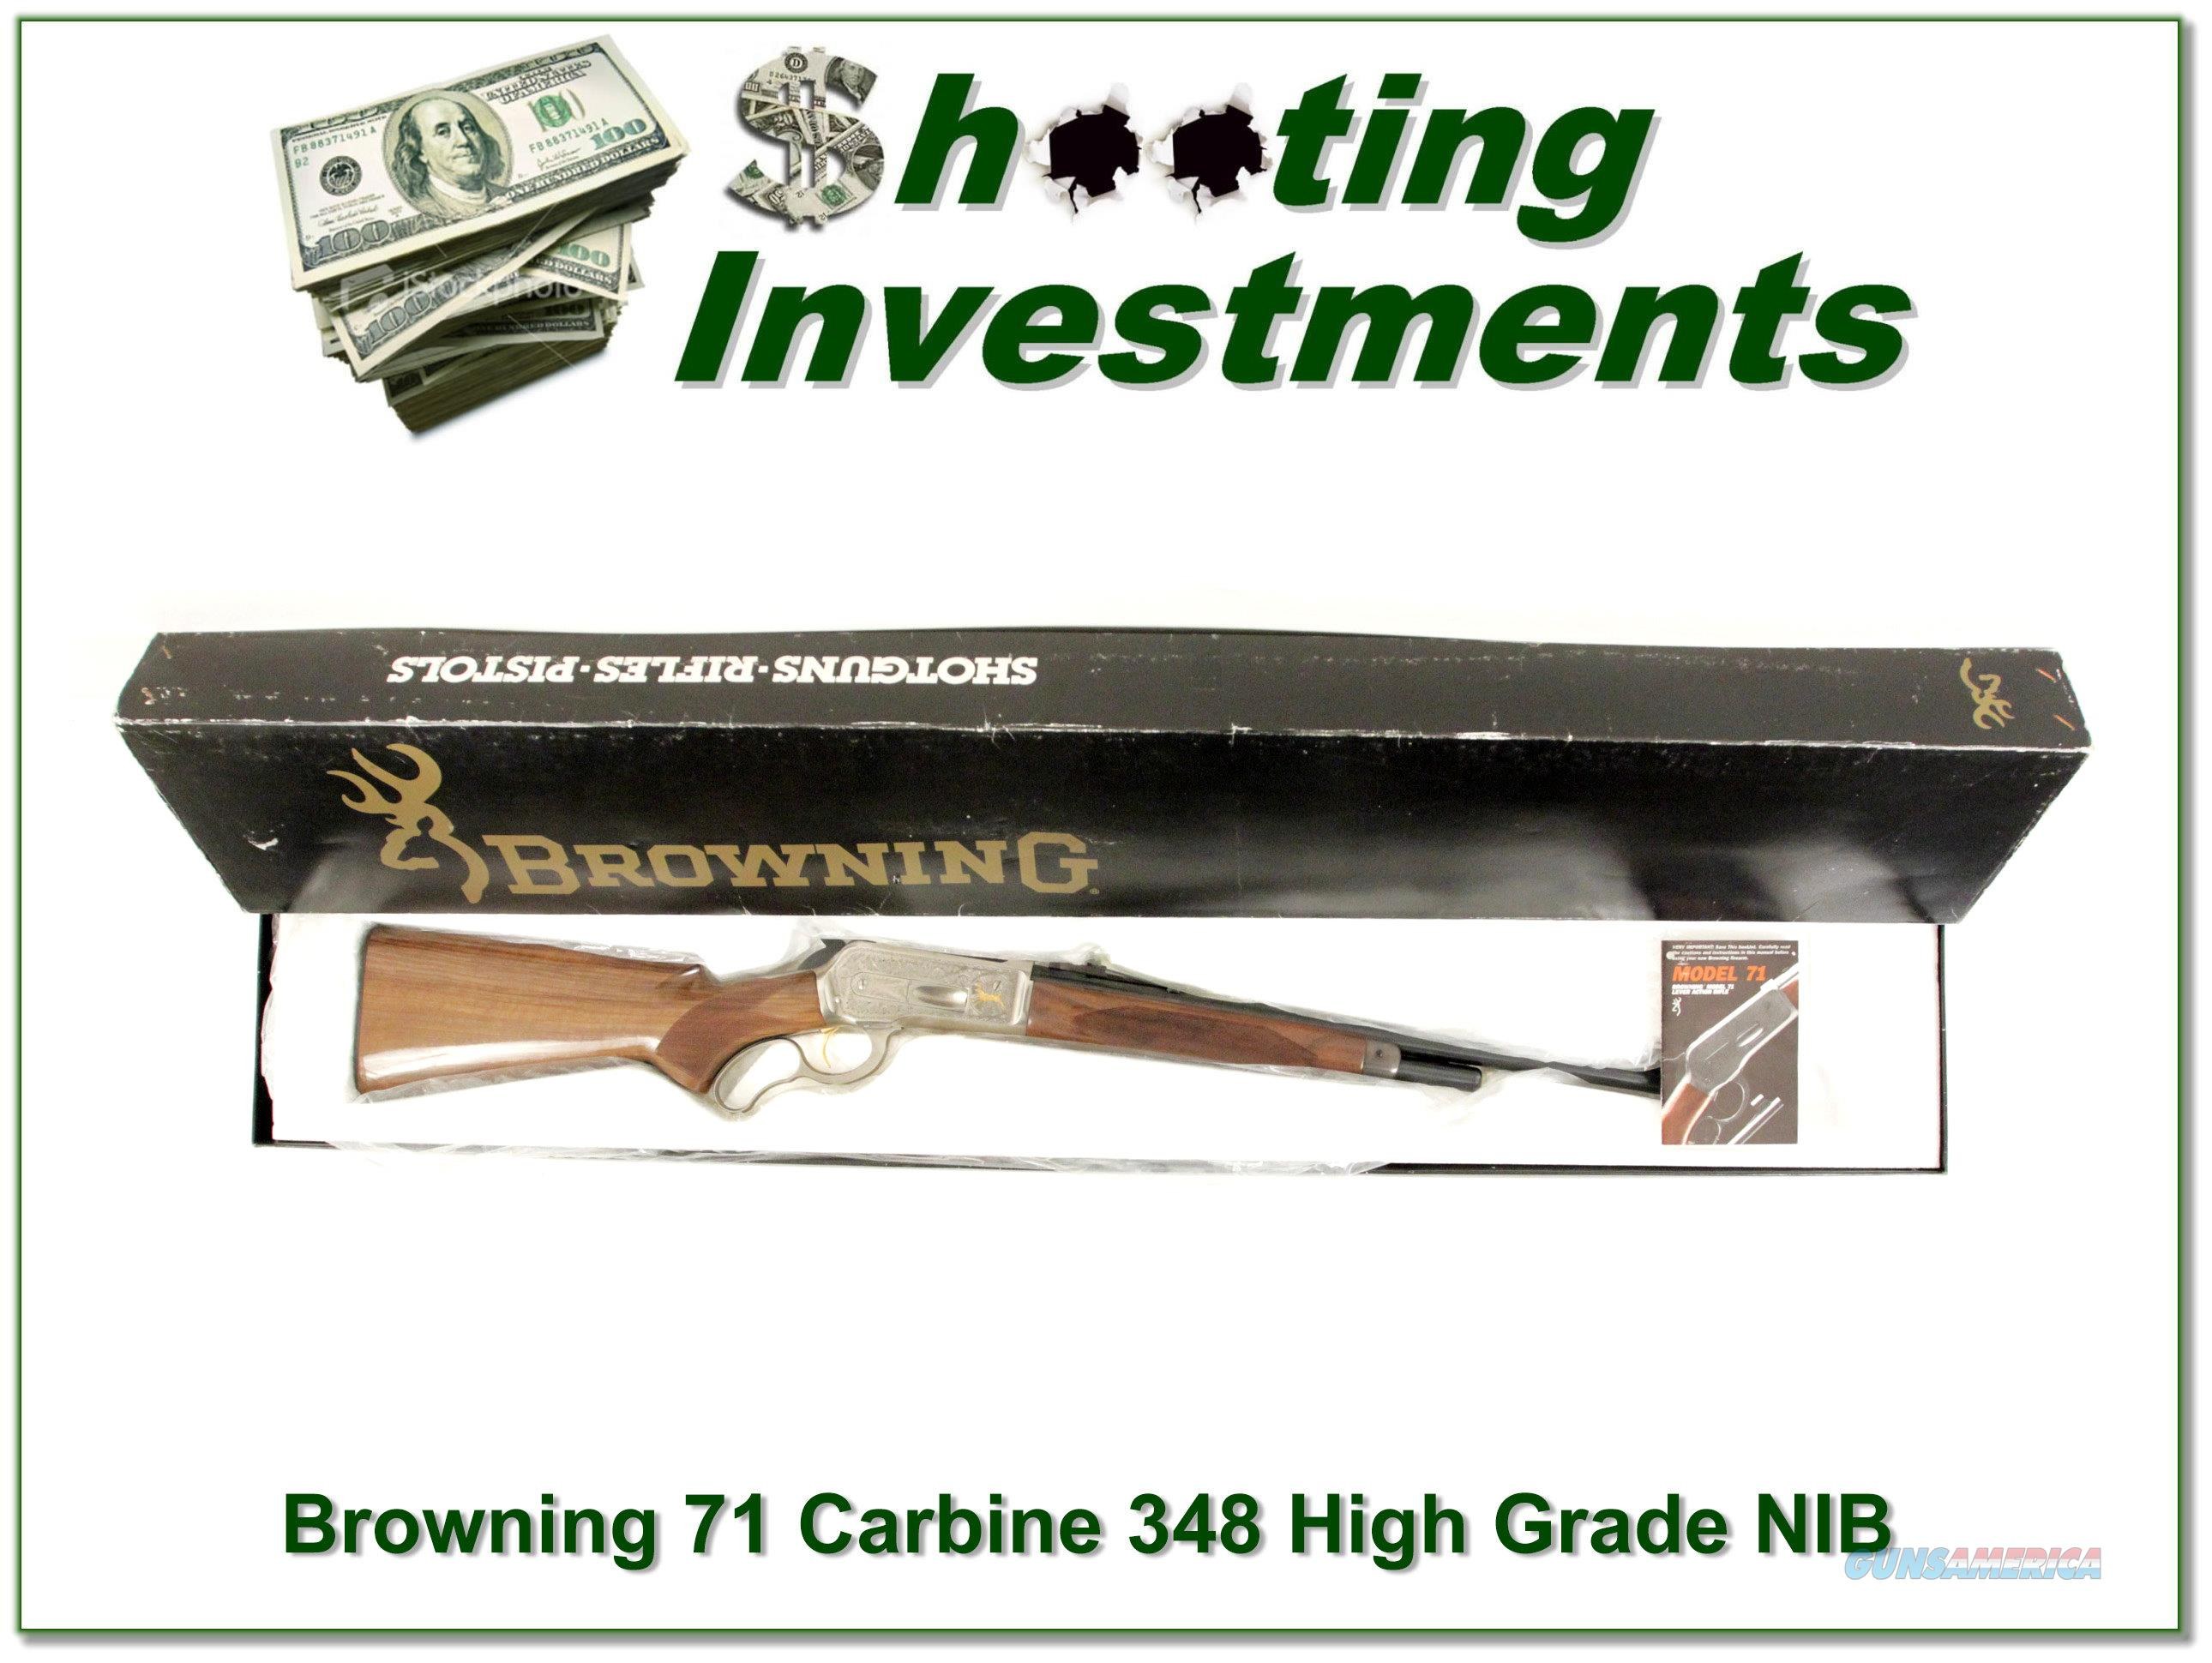 Browning Model 71 Carbine High Grade 348 Win NIB  Guns > Rifles > Browning Rifles > Lever Action